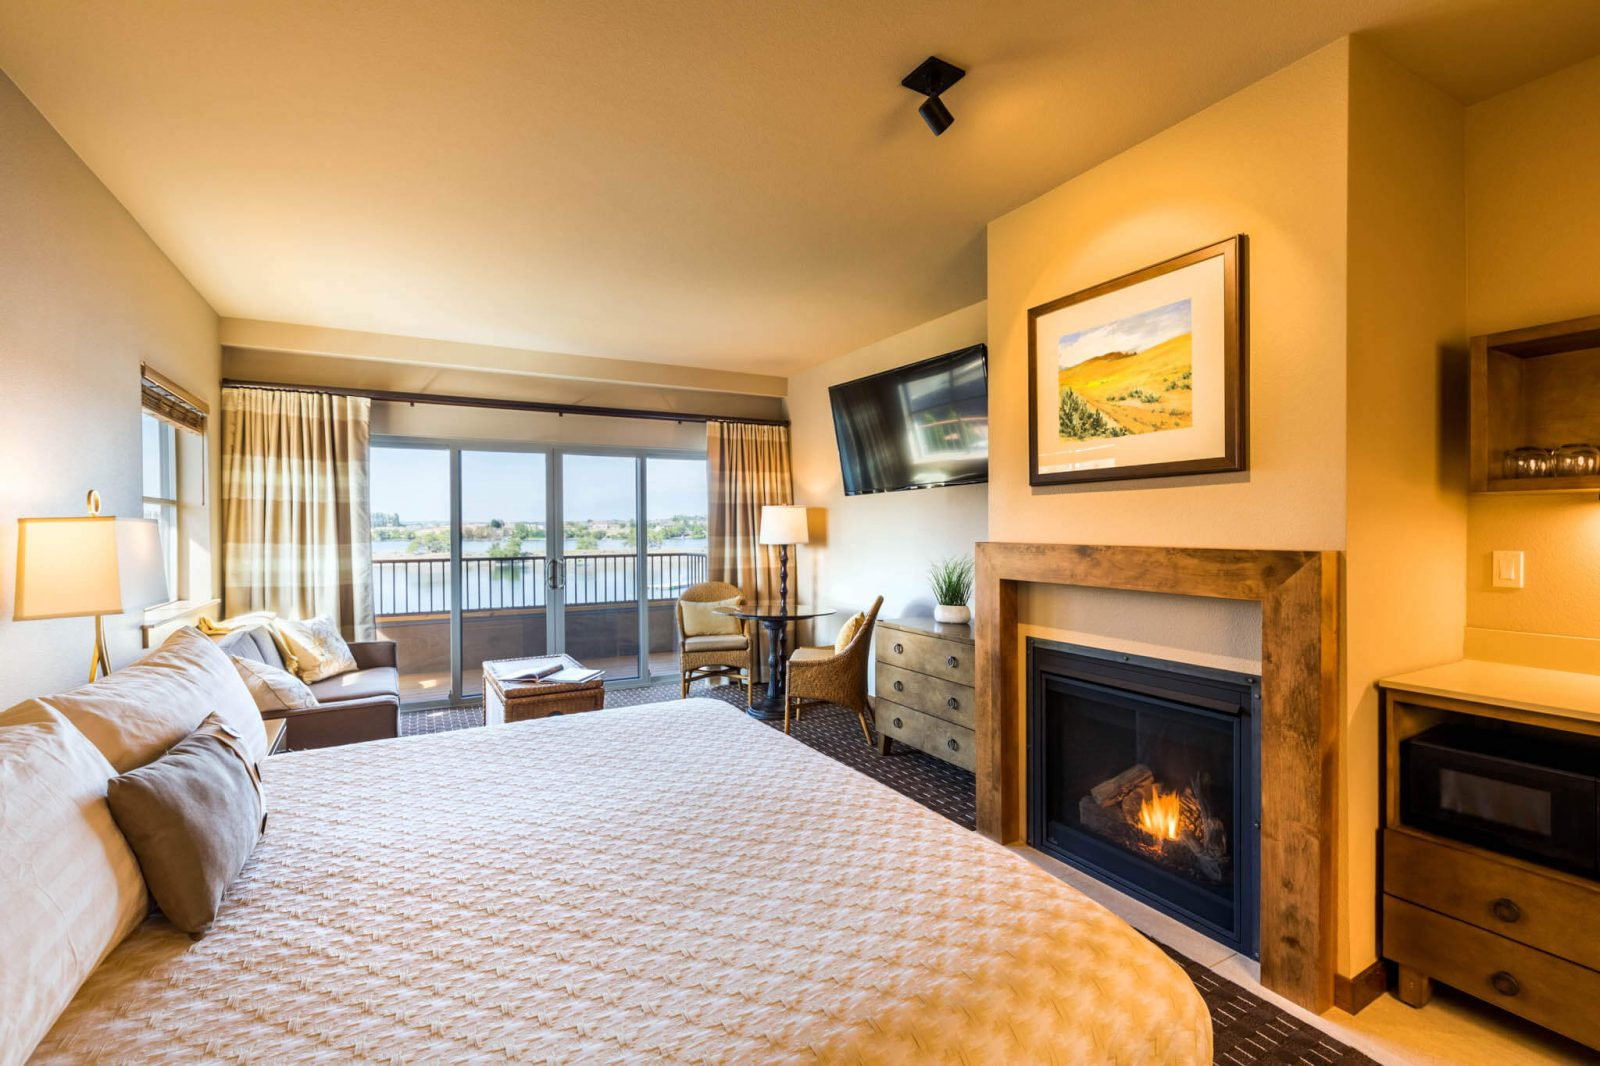 Beautiful room with a cozy fireplace and riverfront view